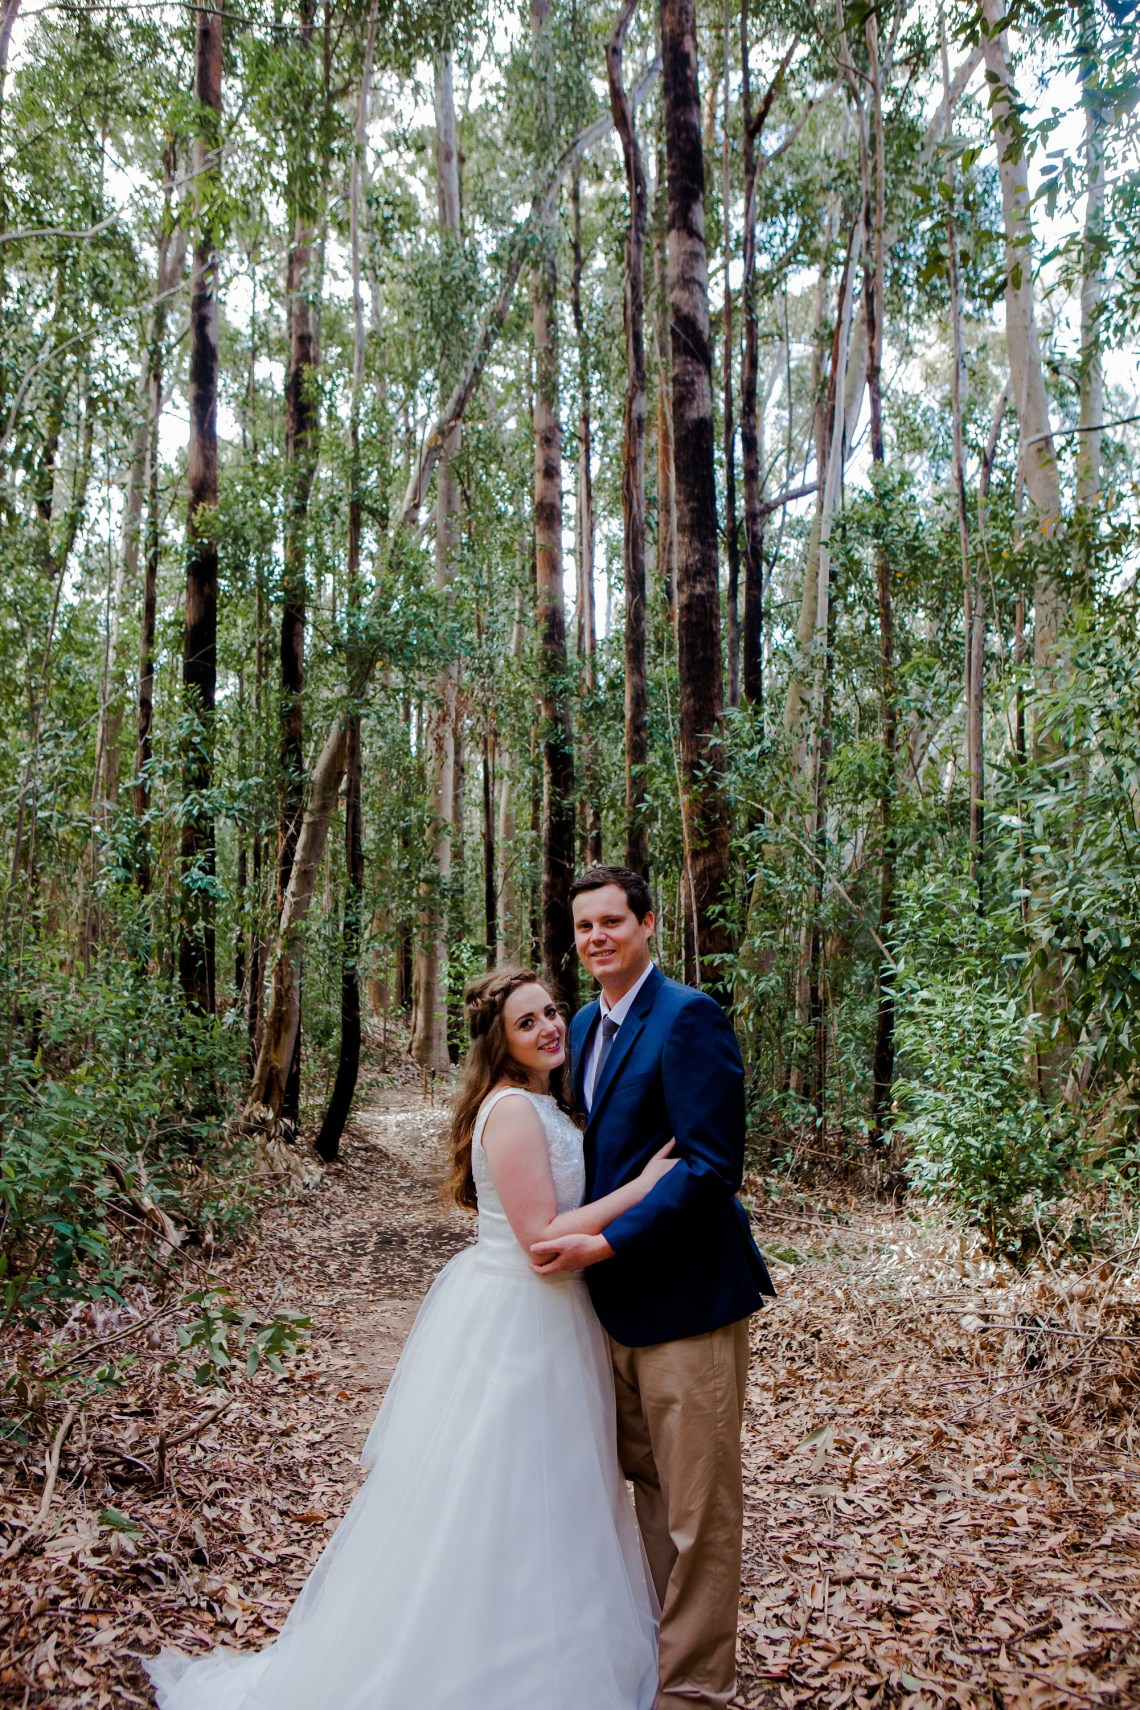 Villiersdorp Wedding Venue-9464